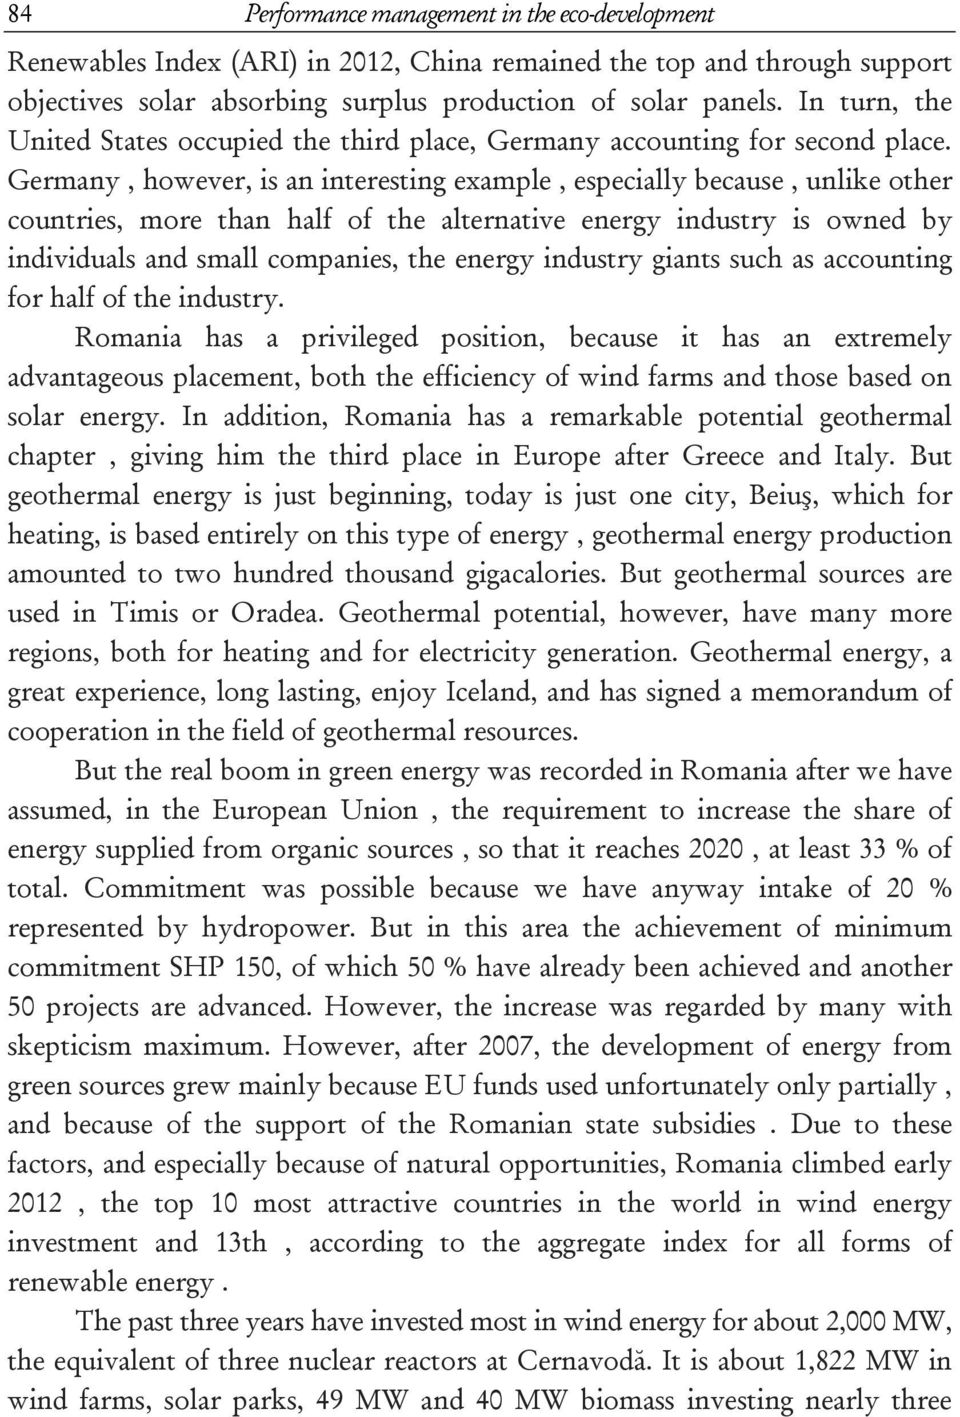 Germany, however, is an interesting example, especially because, unlike other countries, more than half of the alternative energy industry is owned by individuals and small companies, the energy